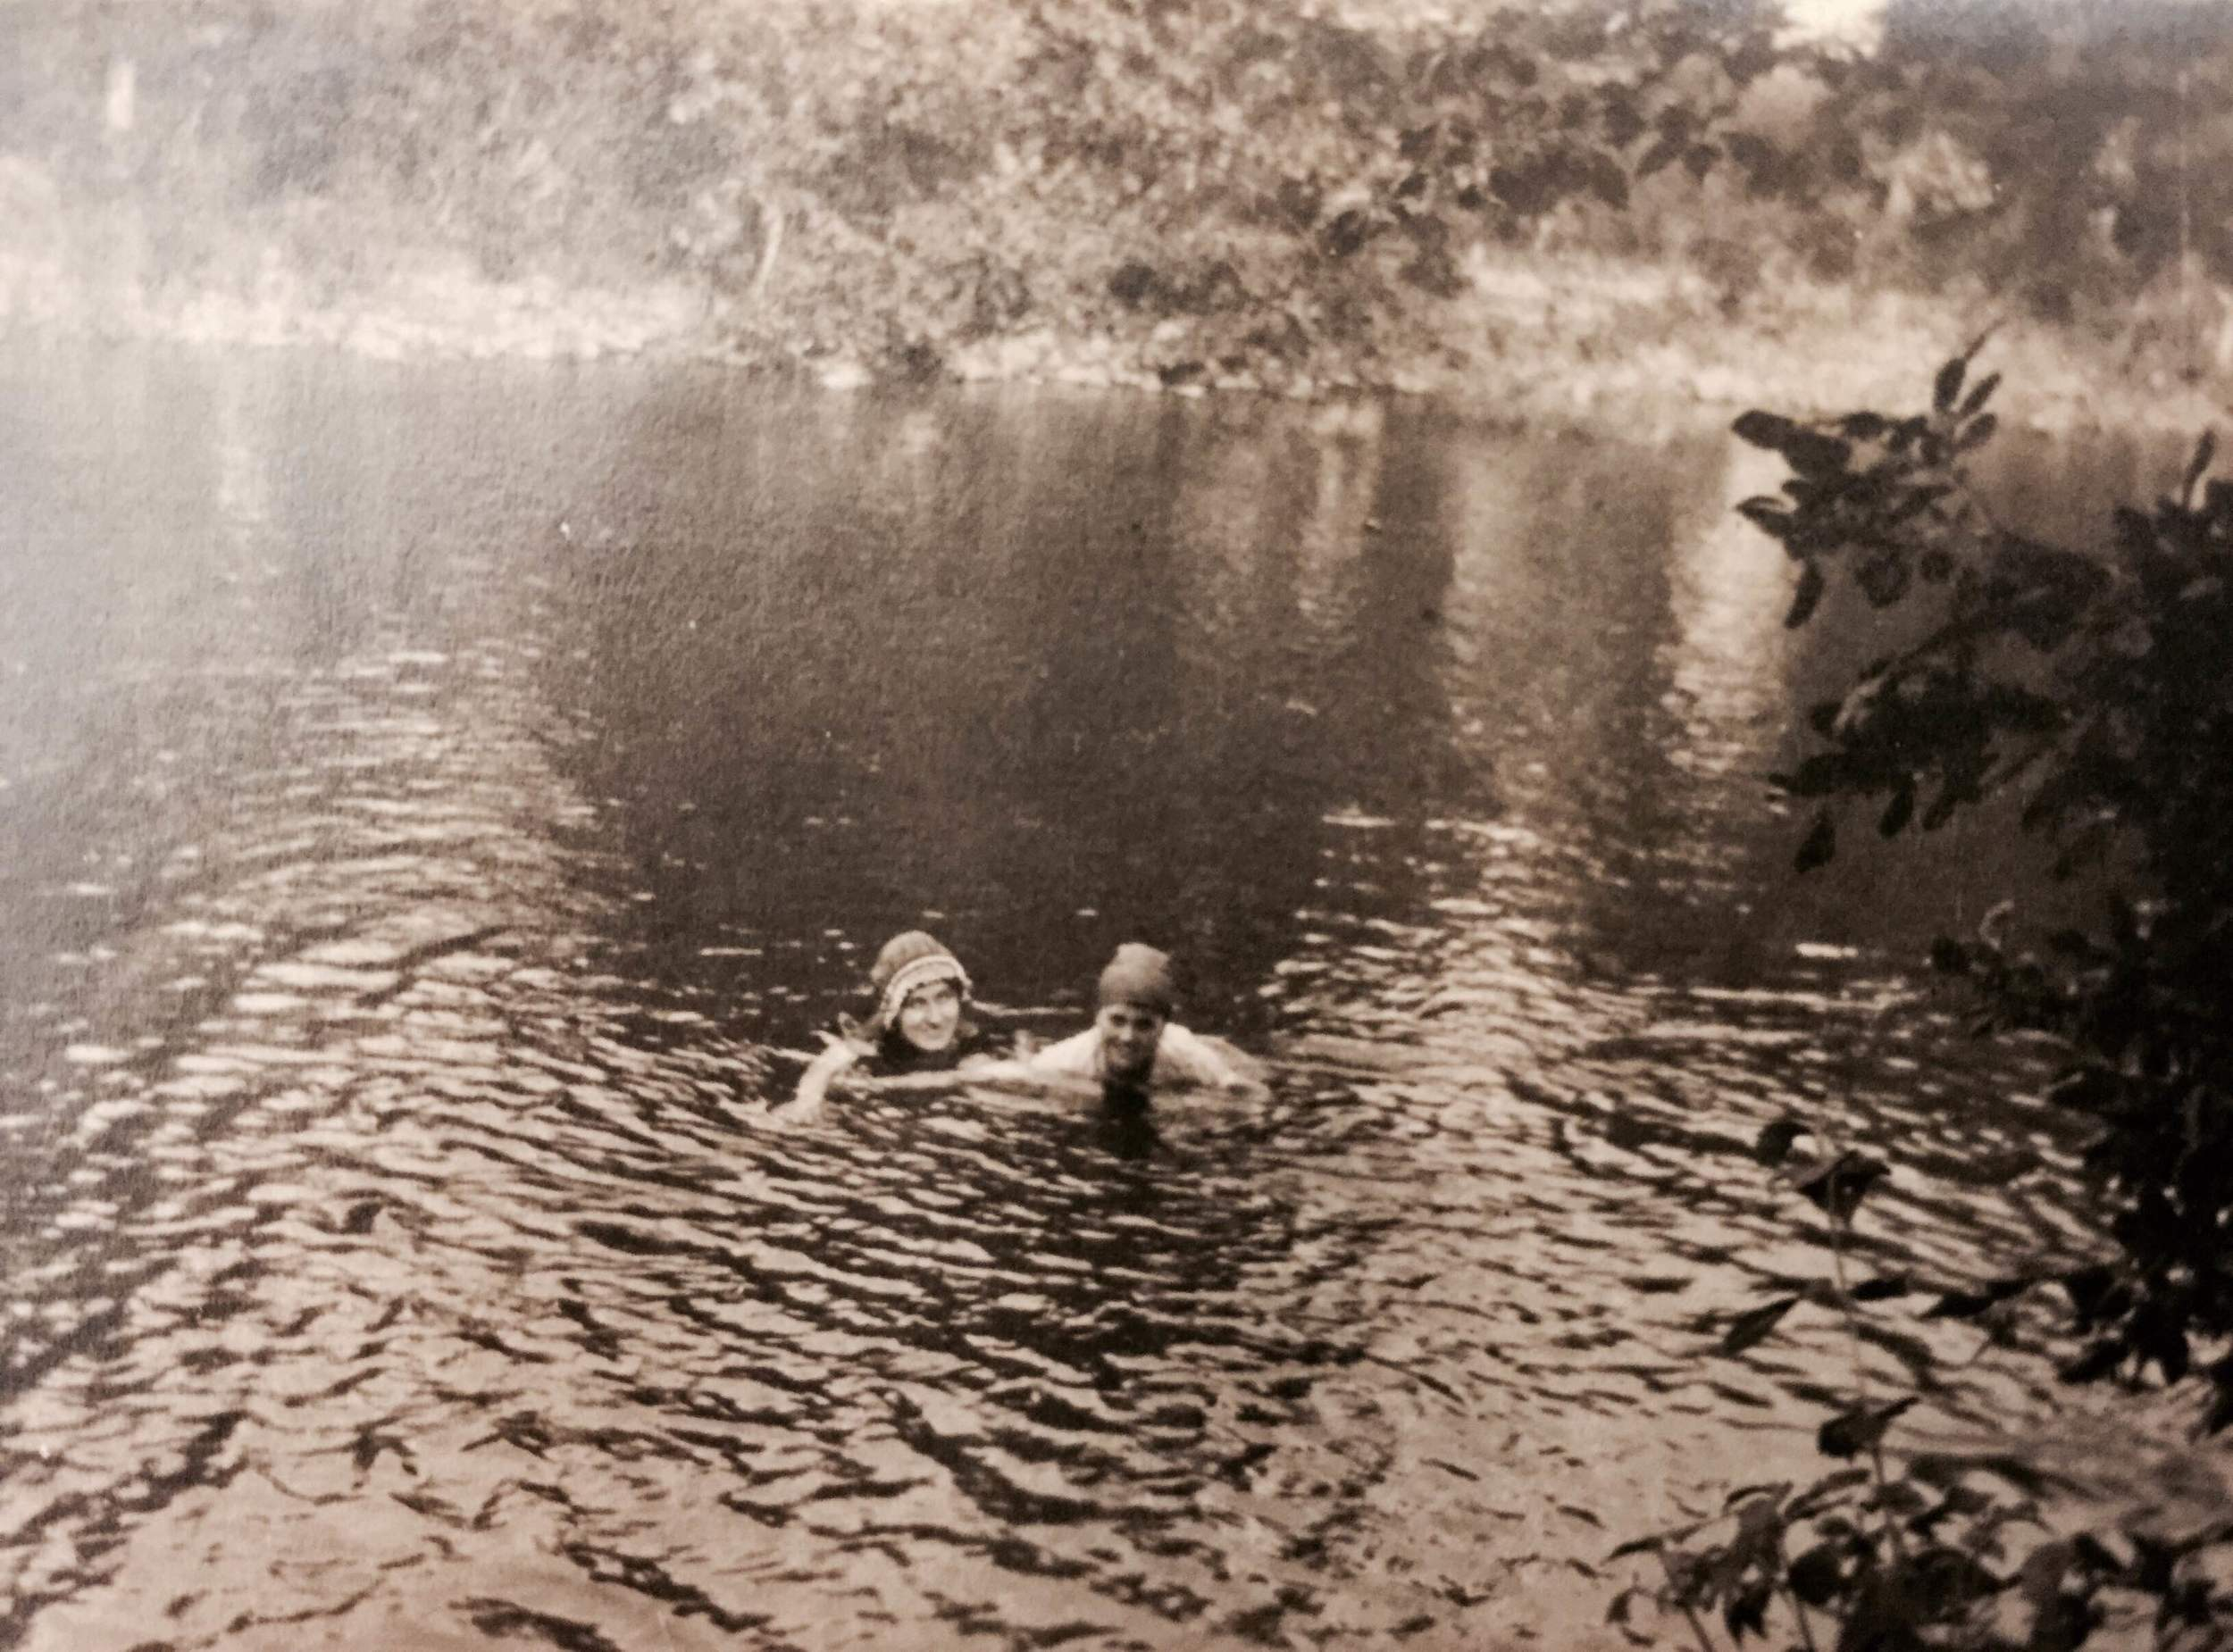 Swimming in a nearby creek Mabry-Hazen Collection